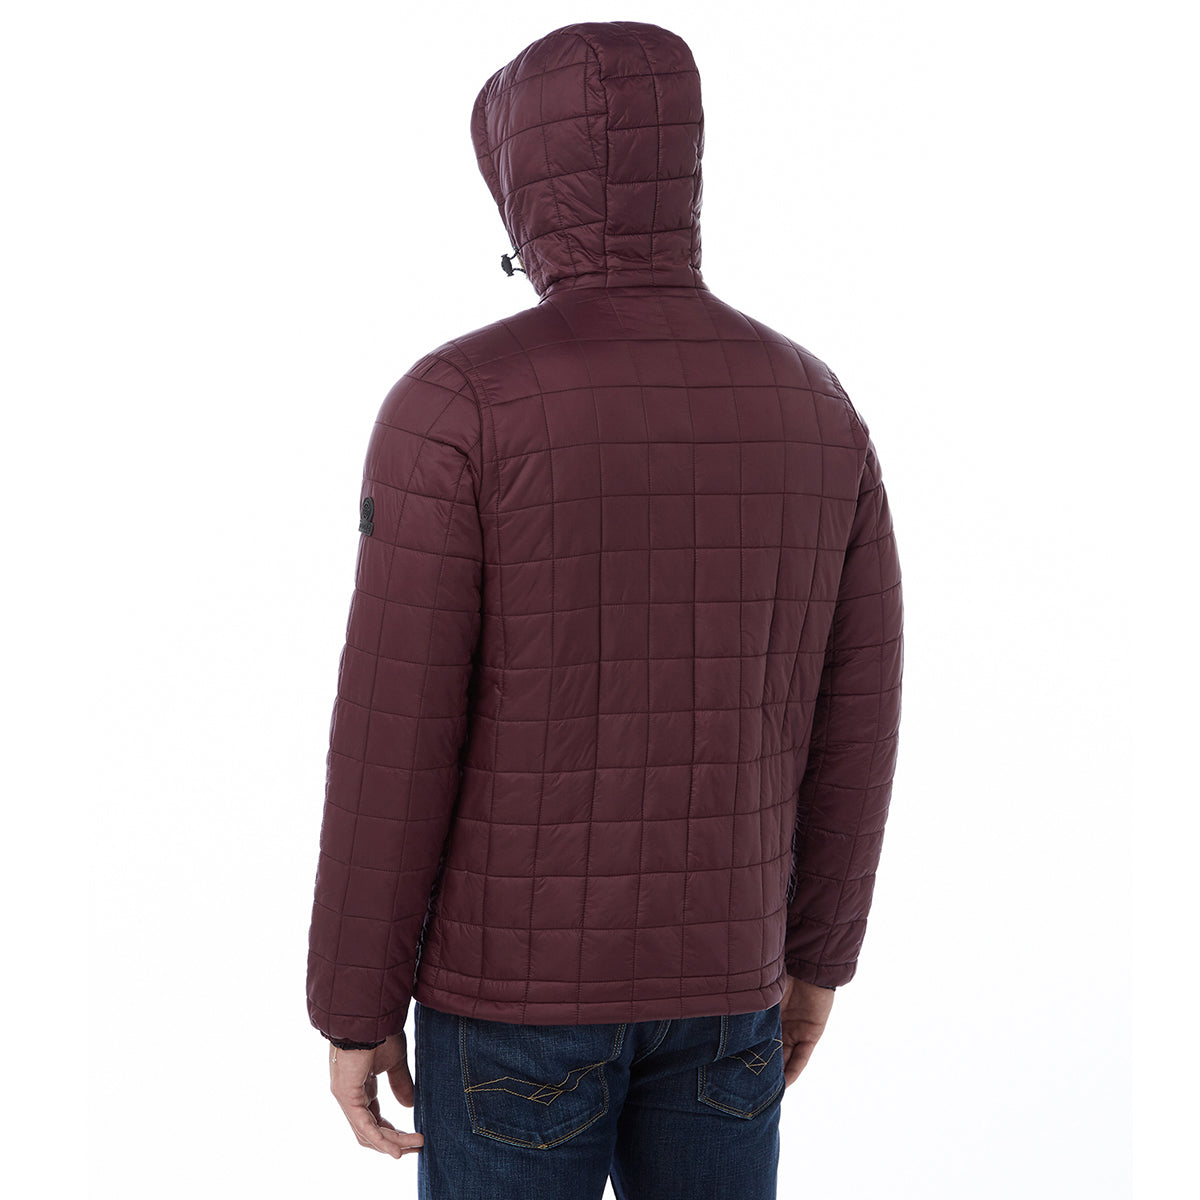 Loxley Mens TCZ Thermal Jacket - Deep Port image 4